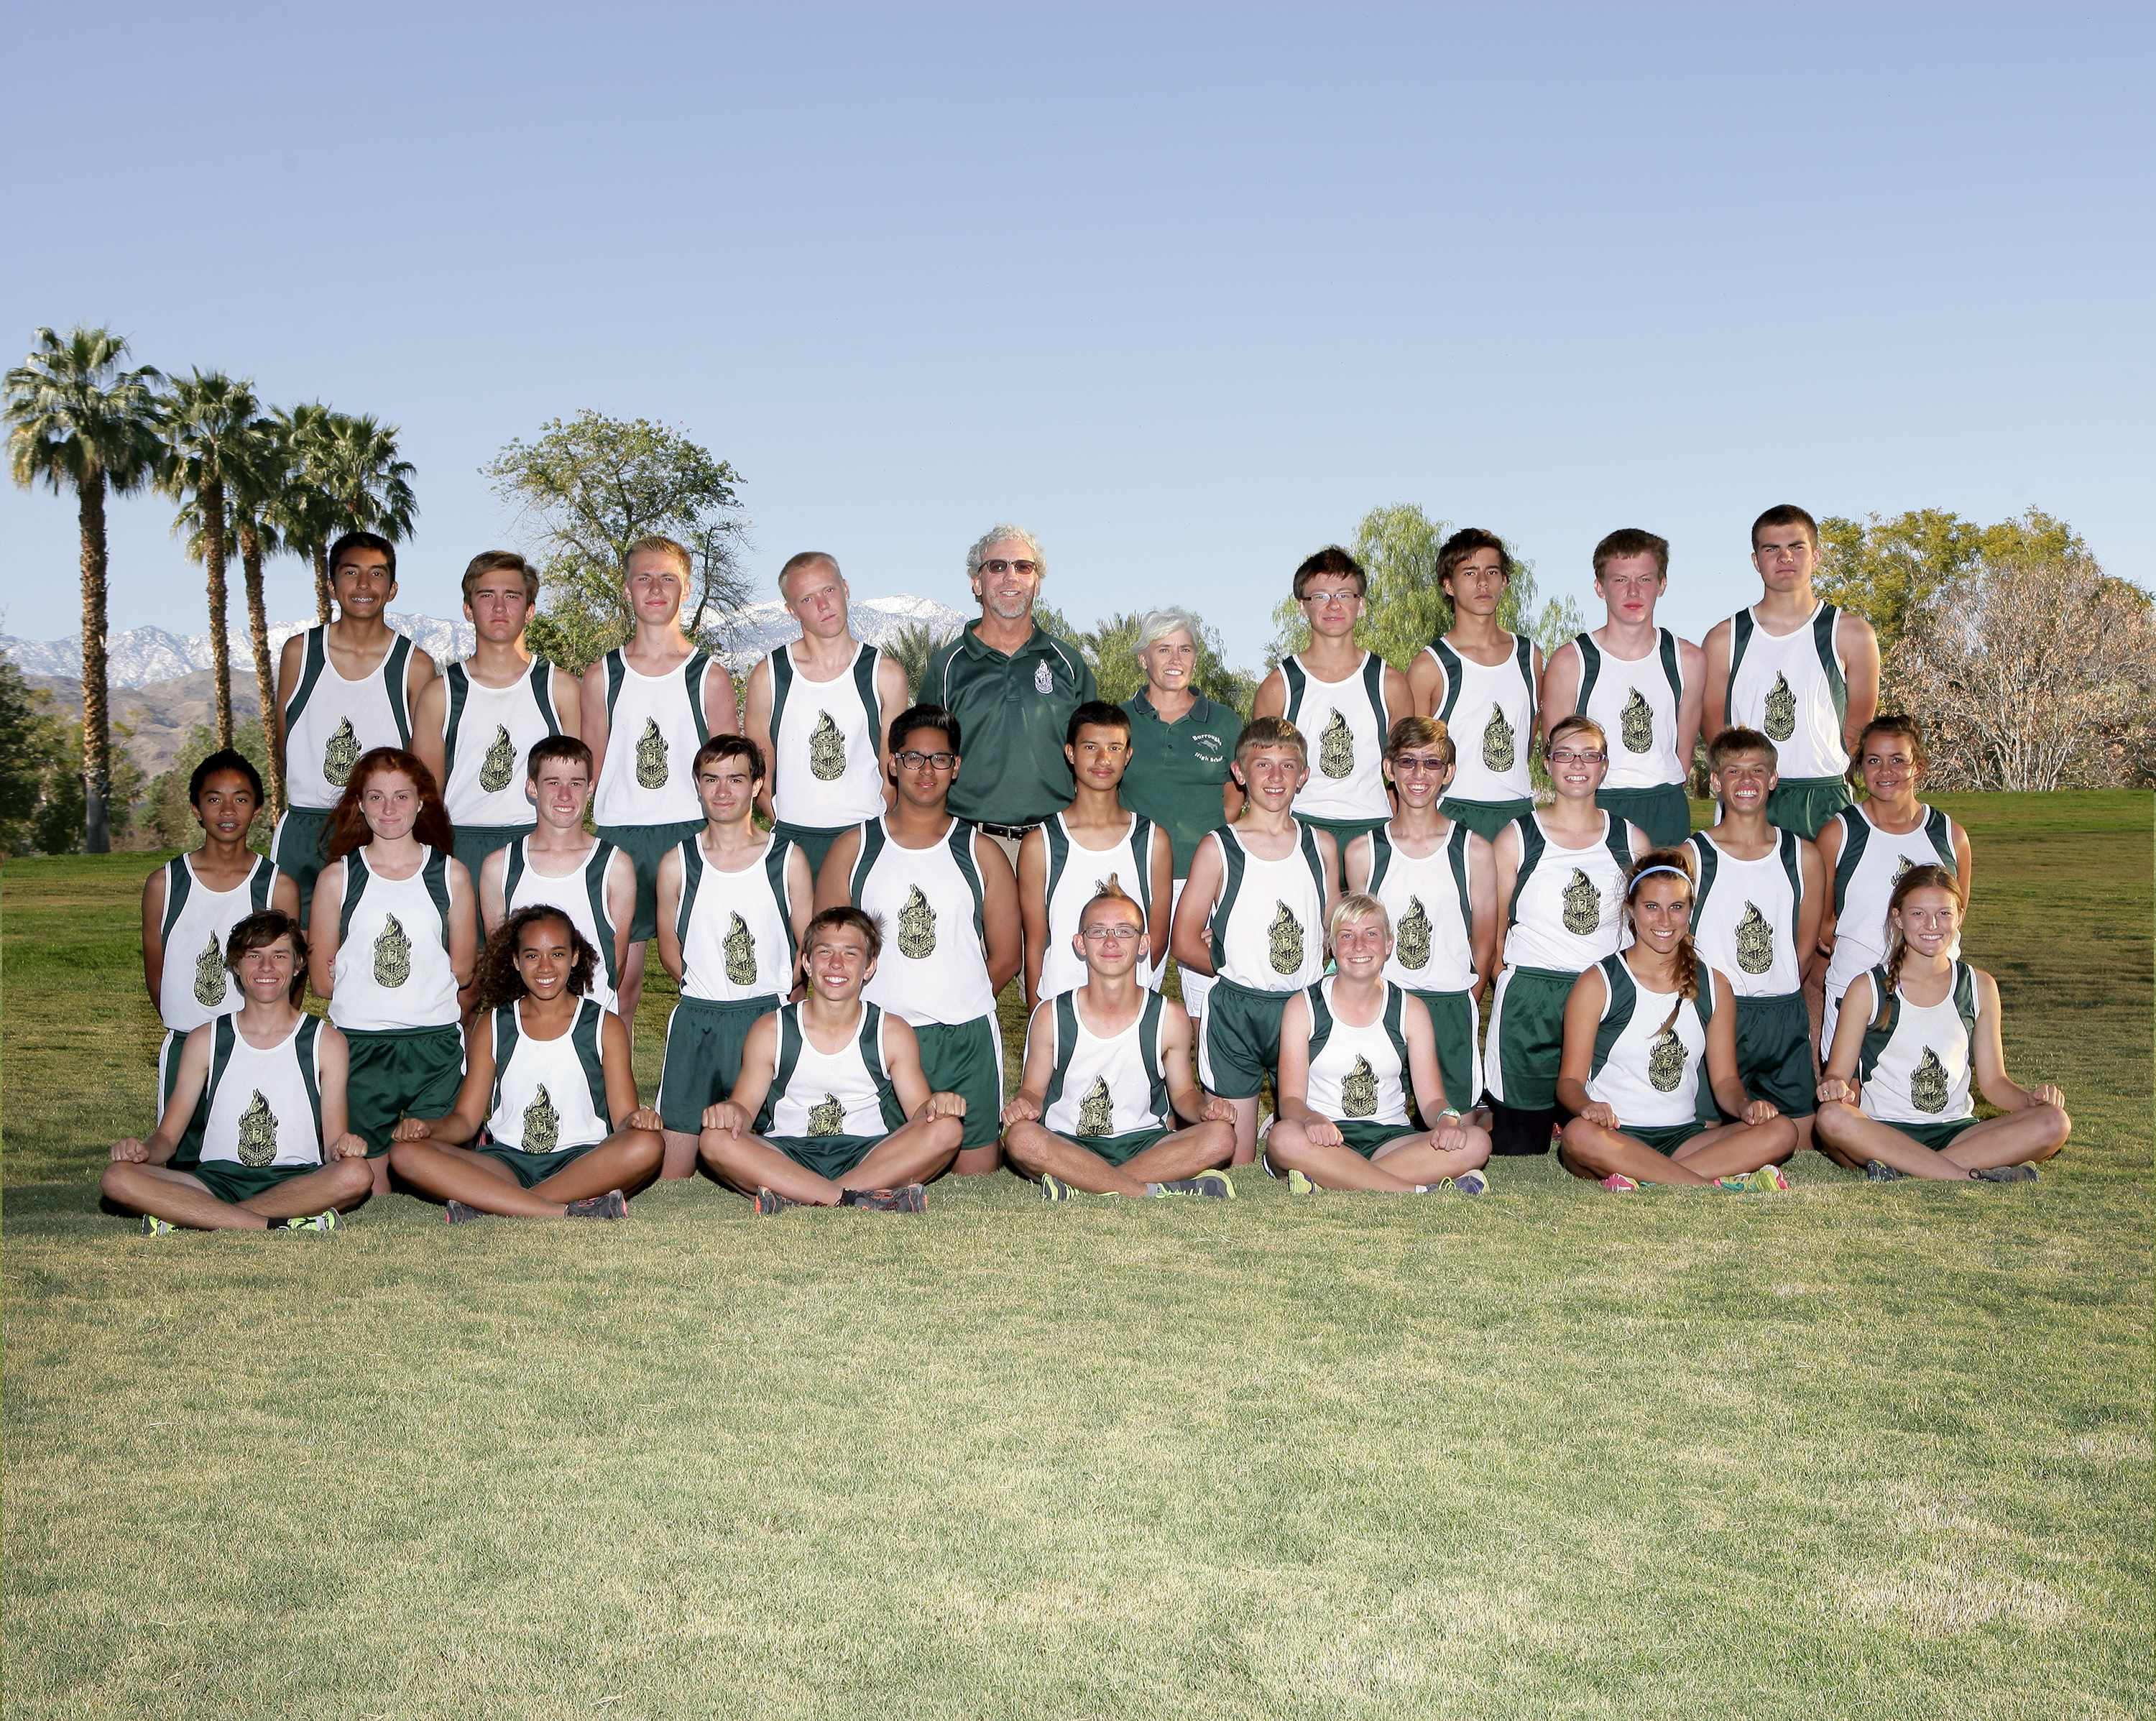 Burroughs Ridgecrest Cross Country And Track Field